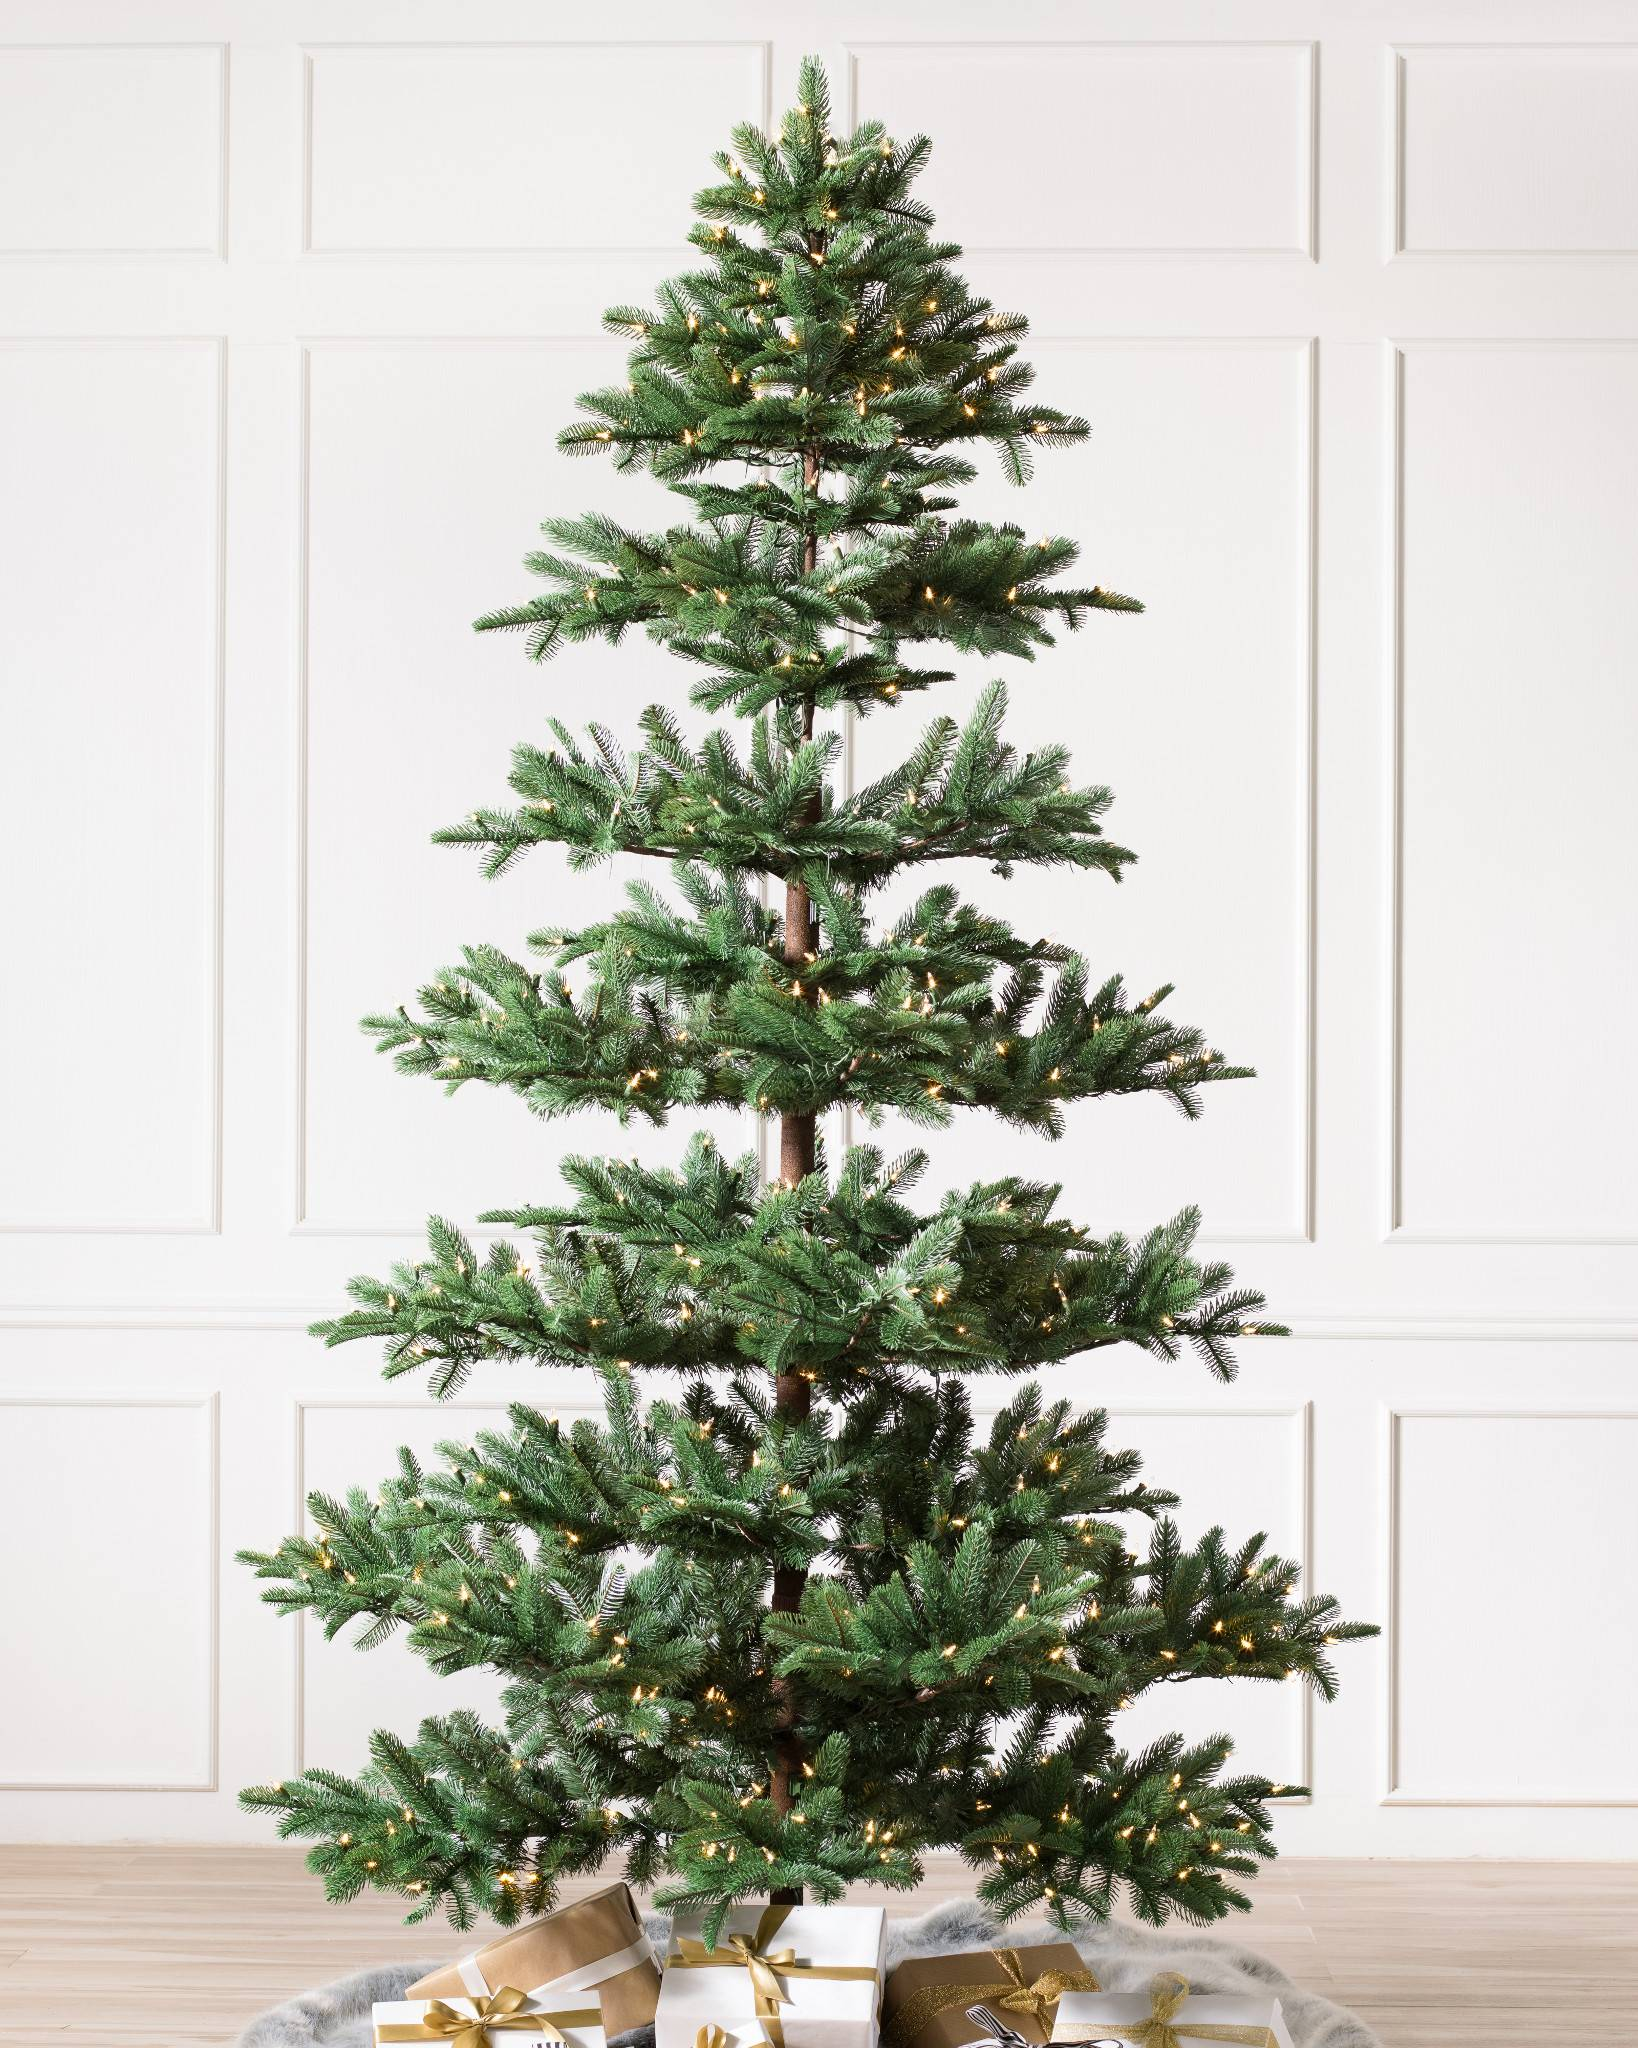 Mountain Fir Artificial Christmas Tree By Balsam Hill Candlelight Led Lights